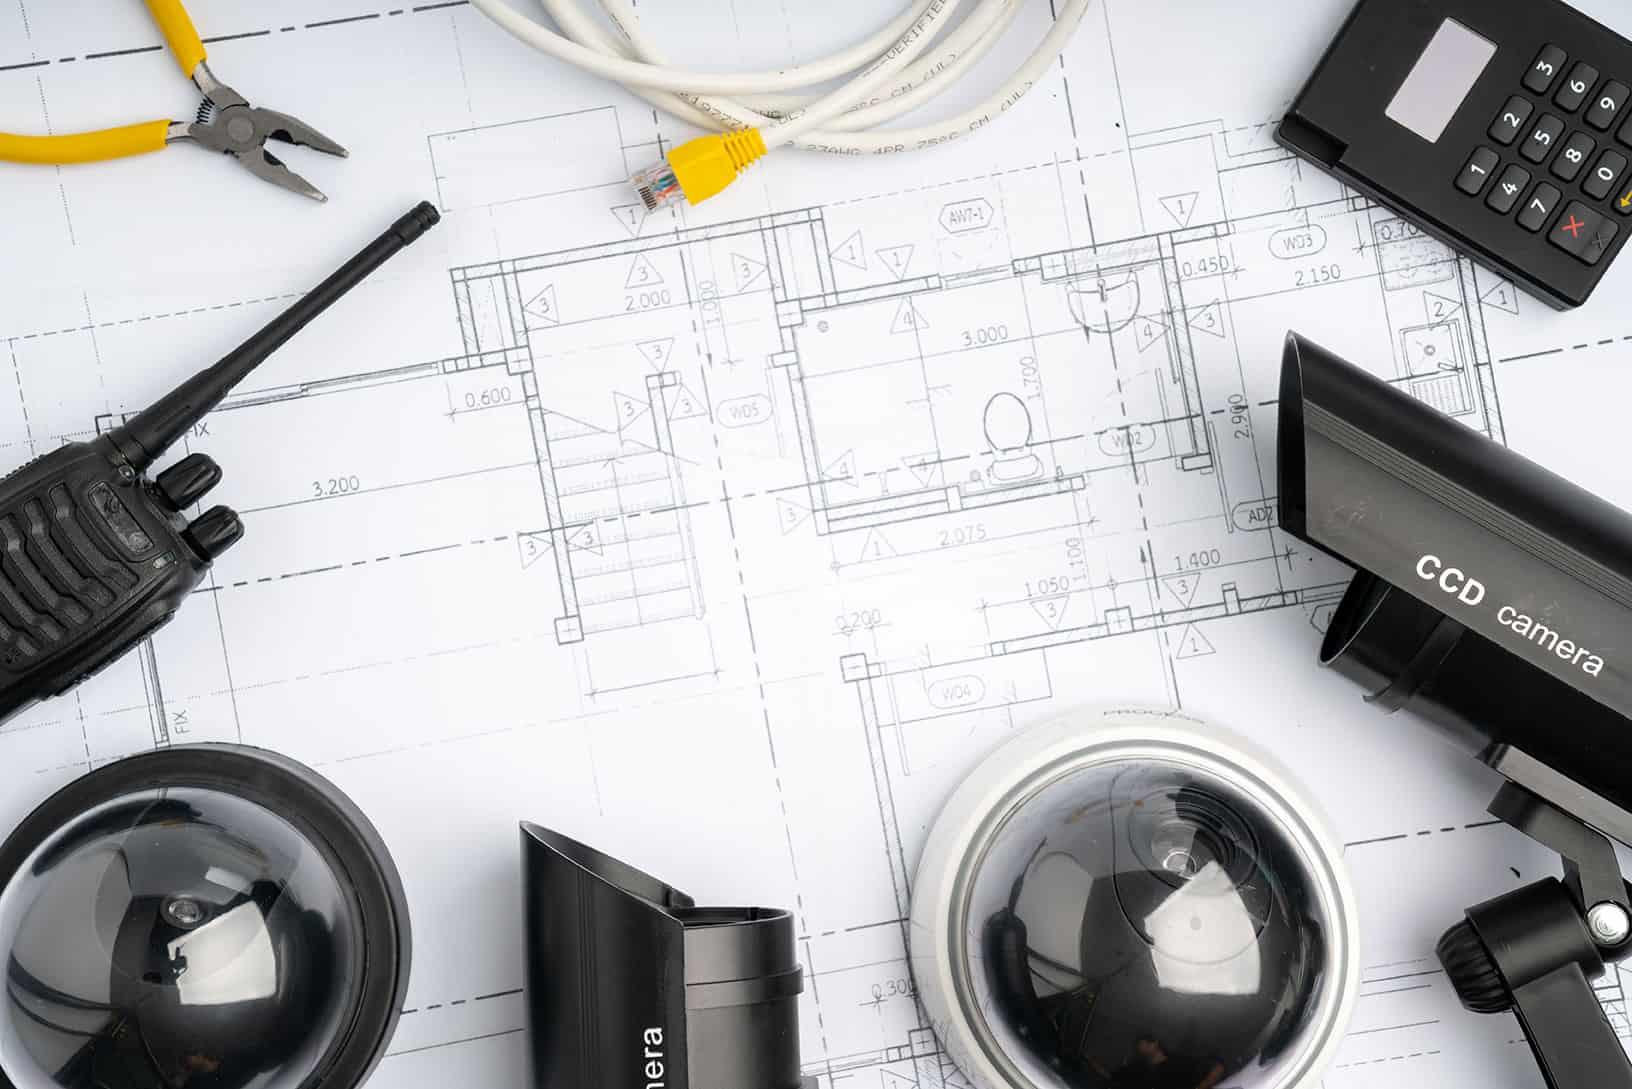 cctv security online camera with house plan 1